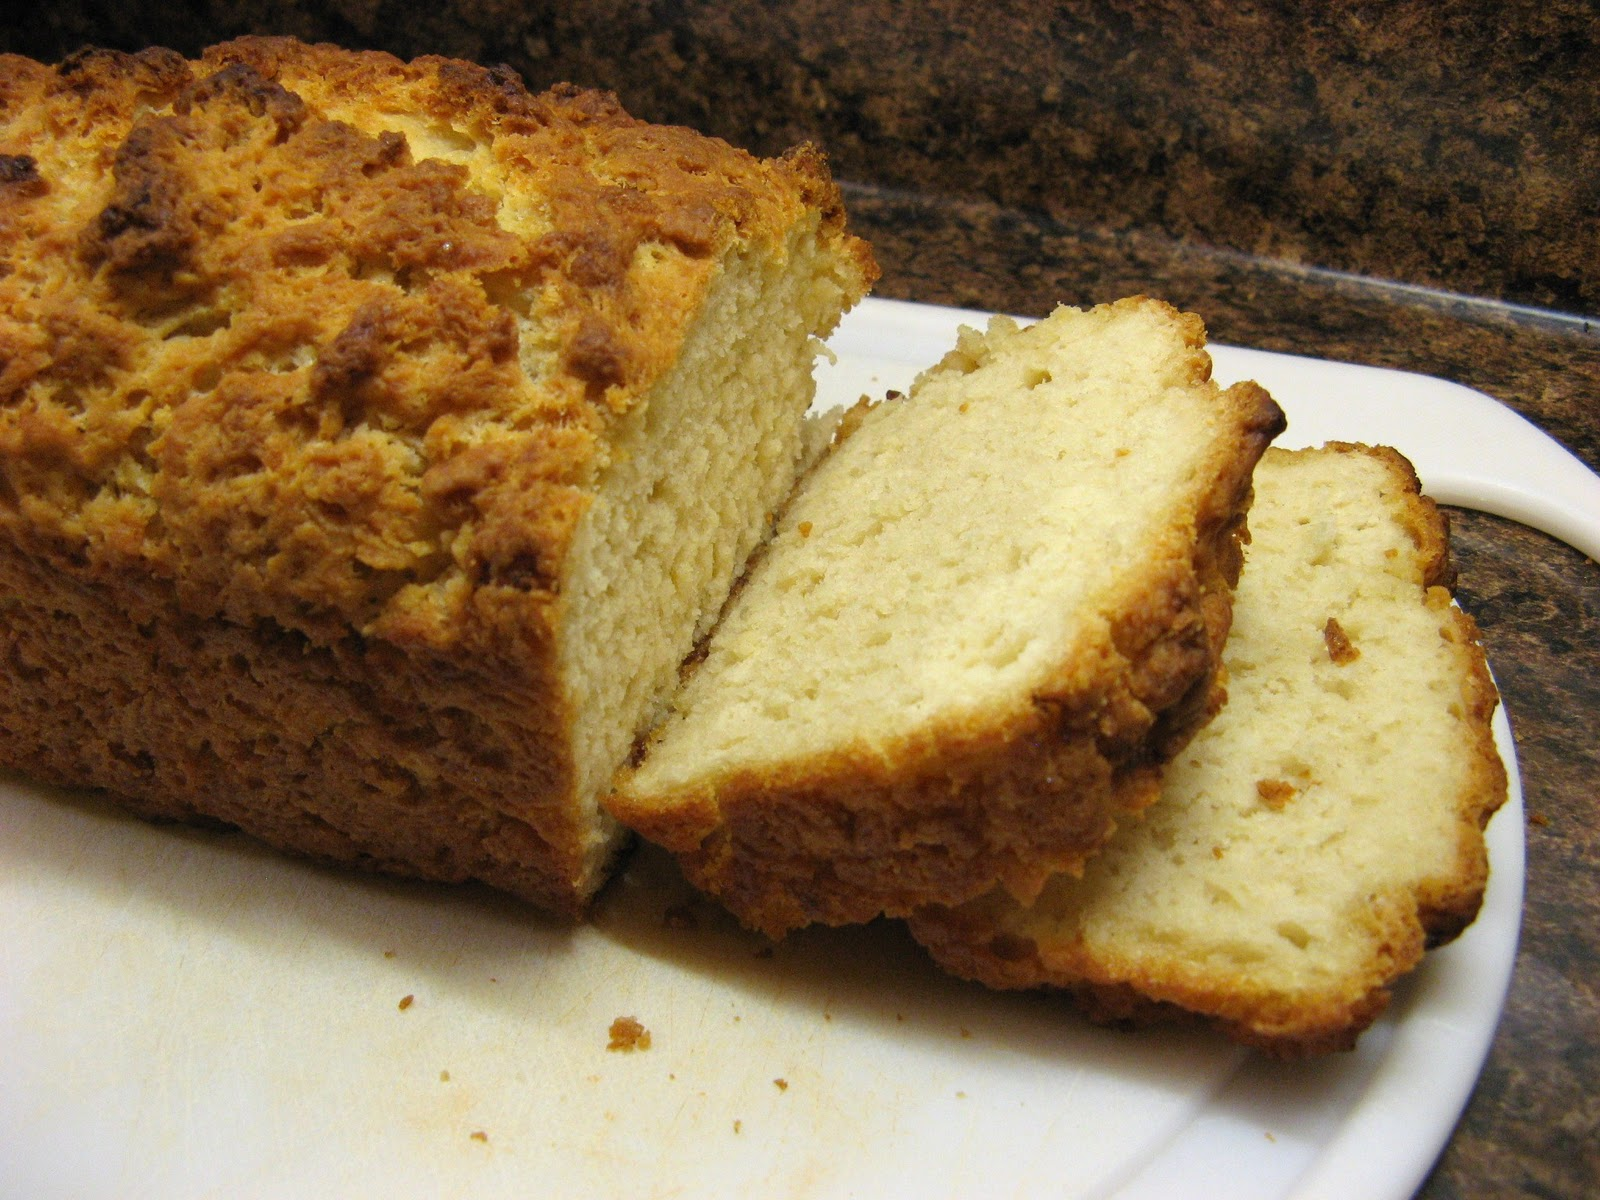 The Well-Fed Newlyweds: Beer Bread